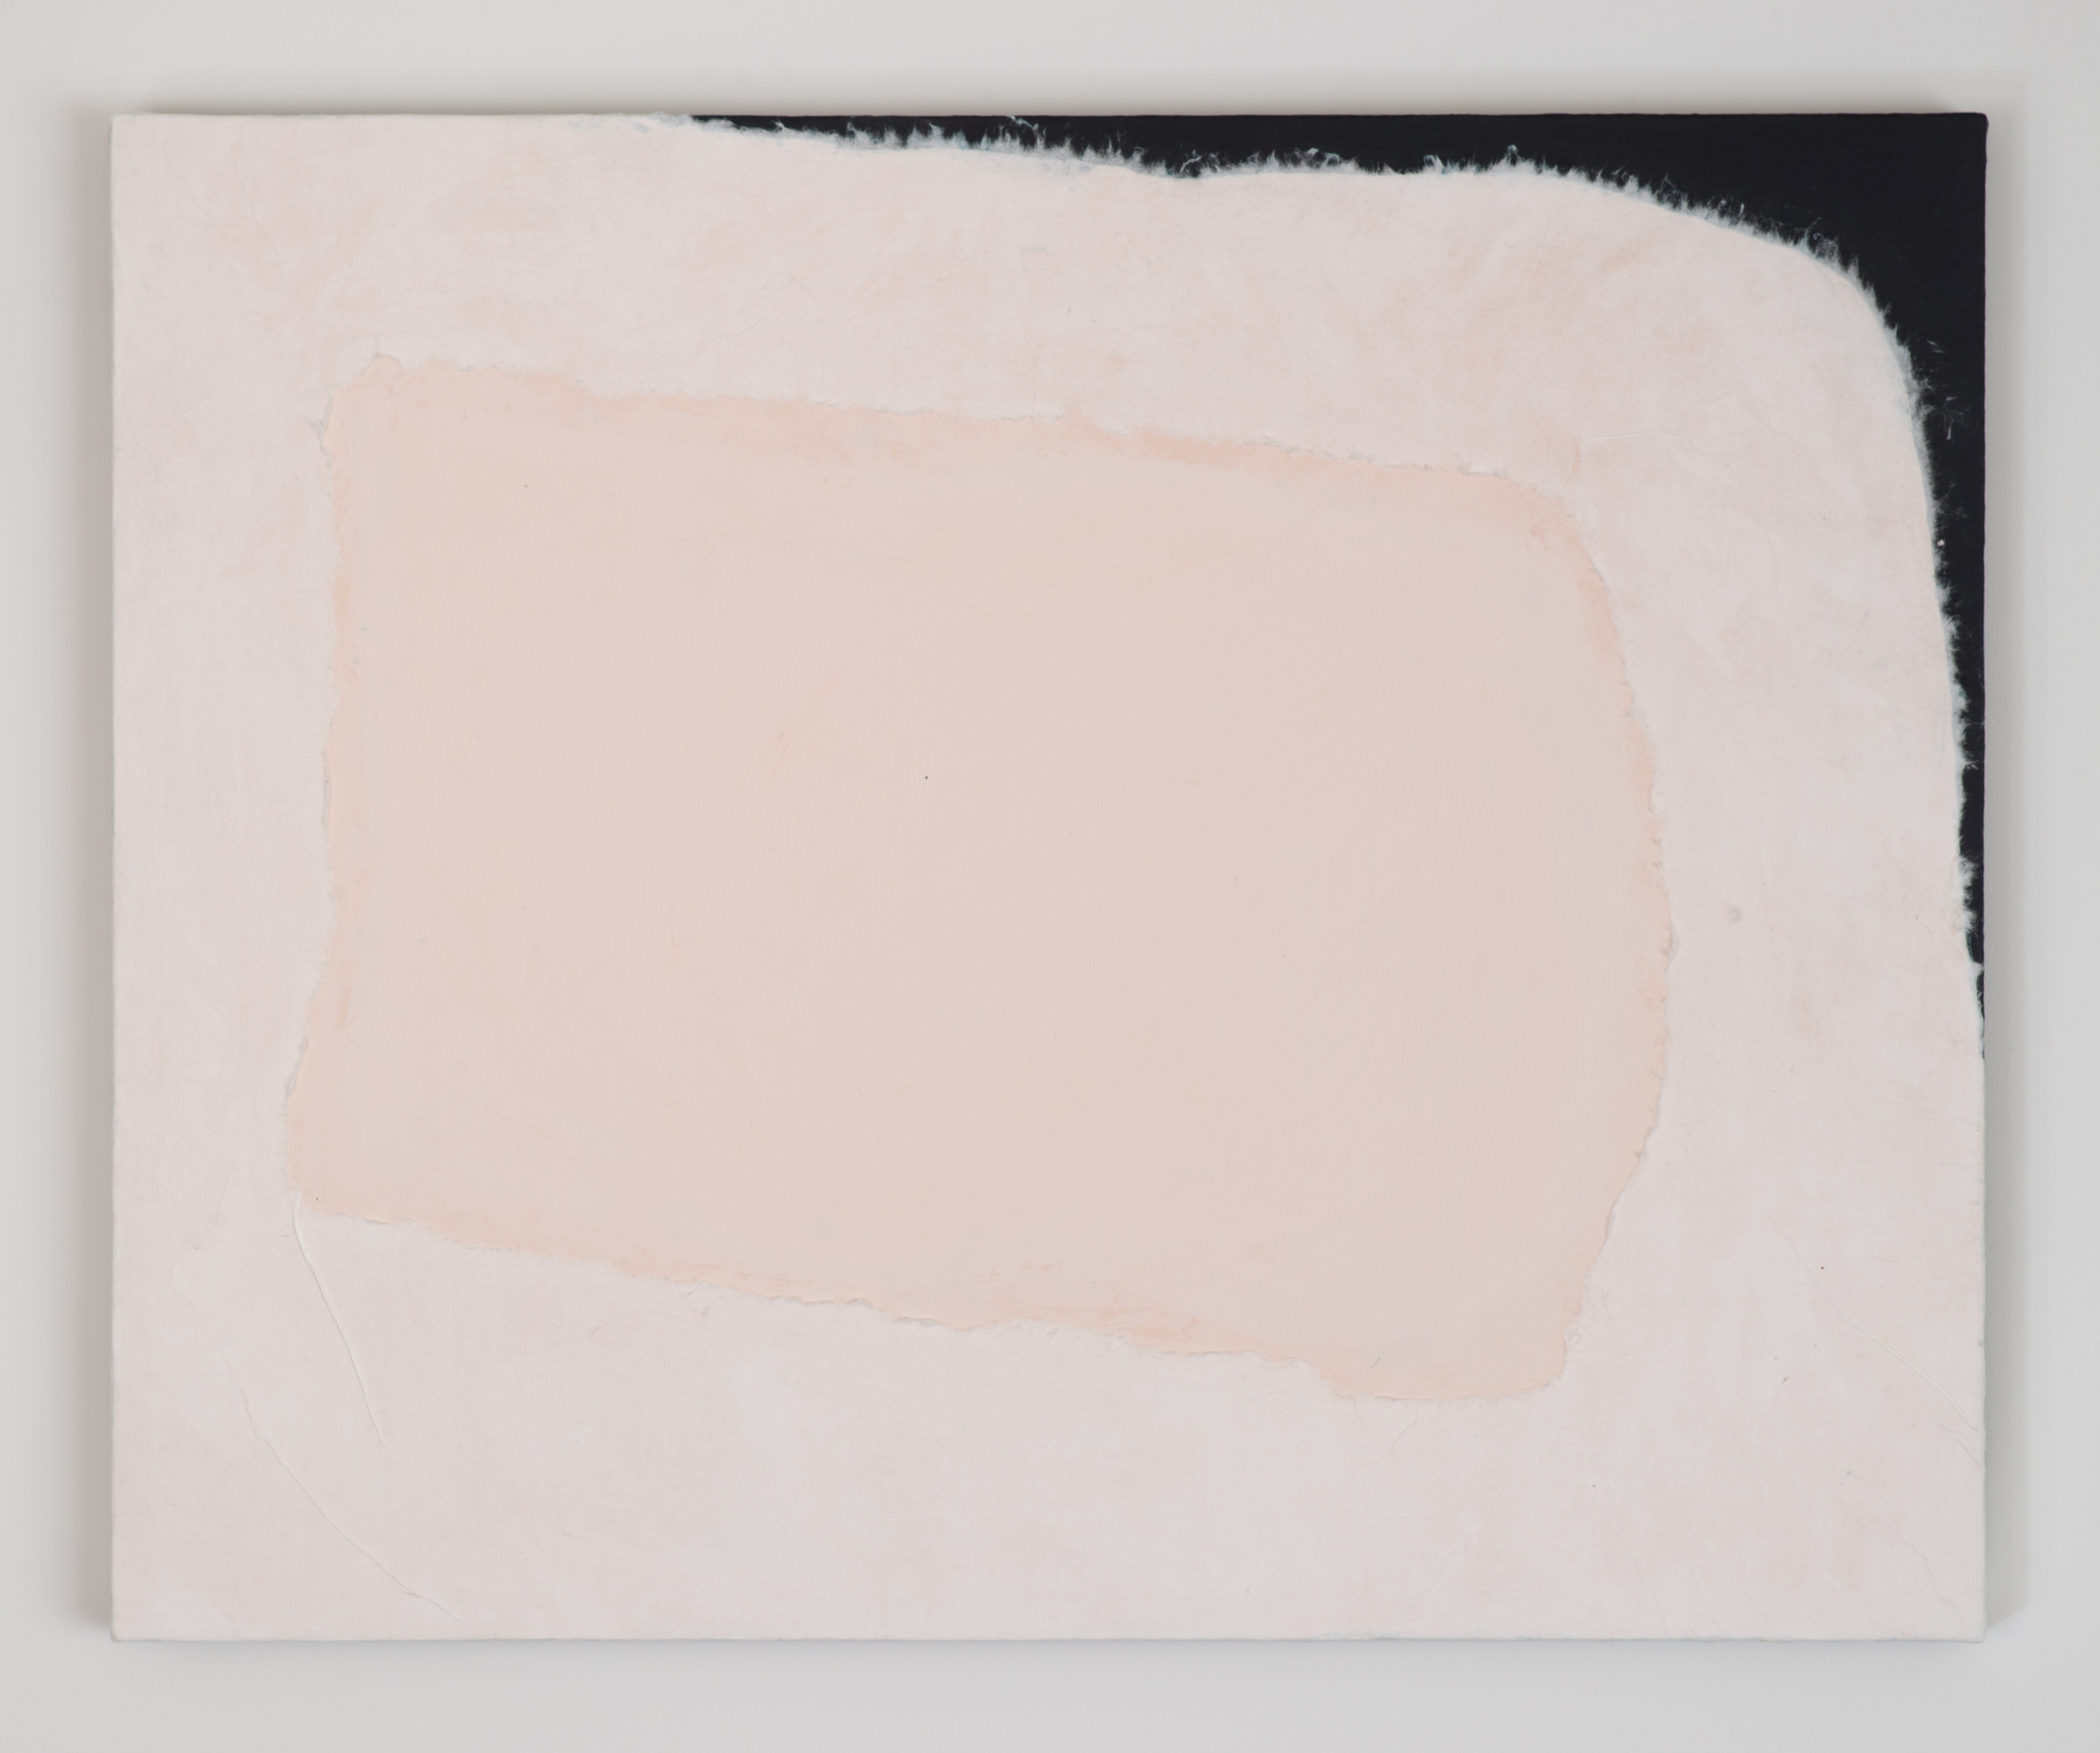 Peter Adsett, Painting number 8, Paint, paper, smooth coat and linen, 69.7 x 56.7 x 2.2cm.jpg